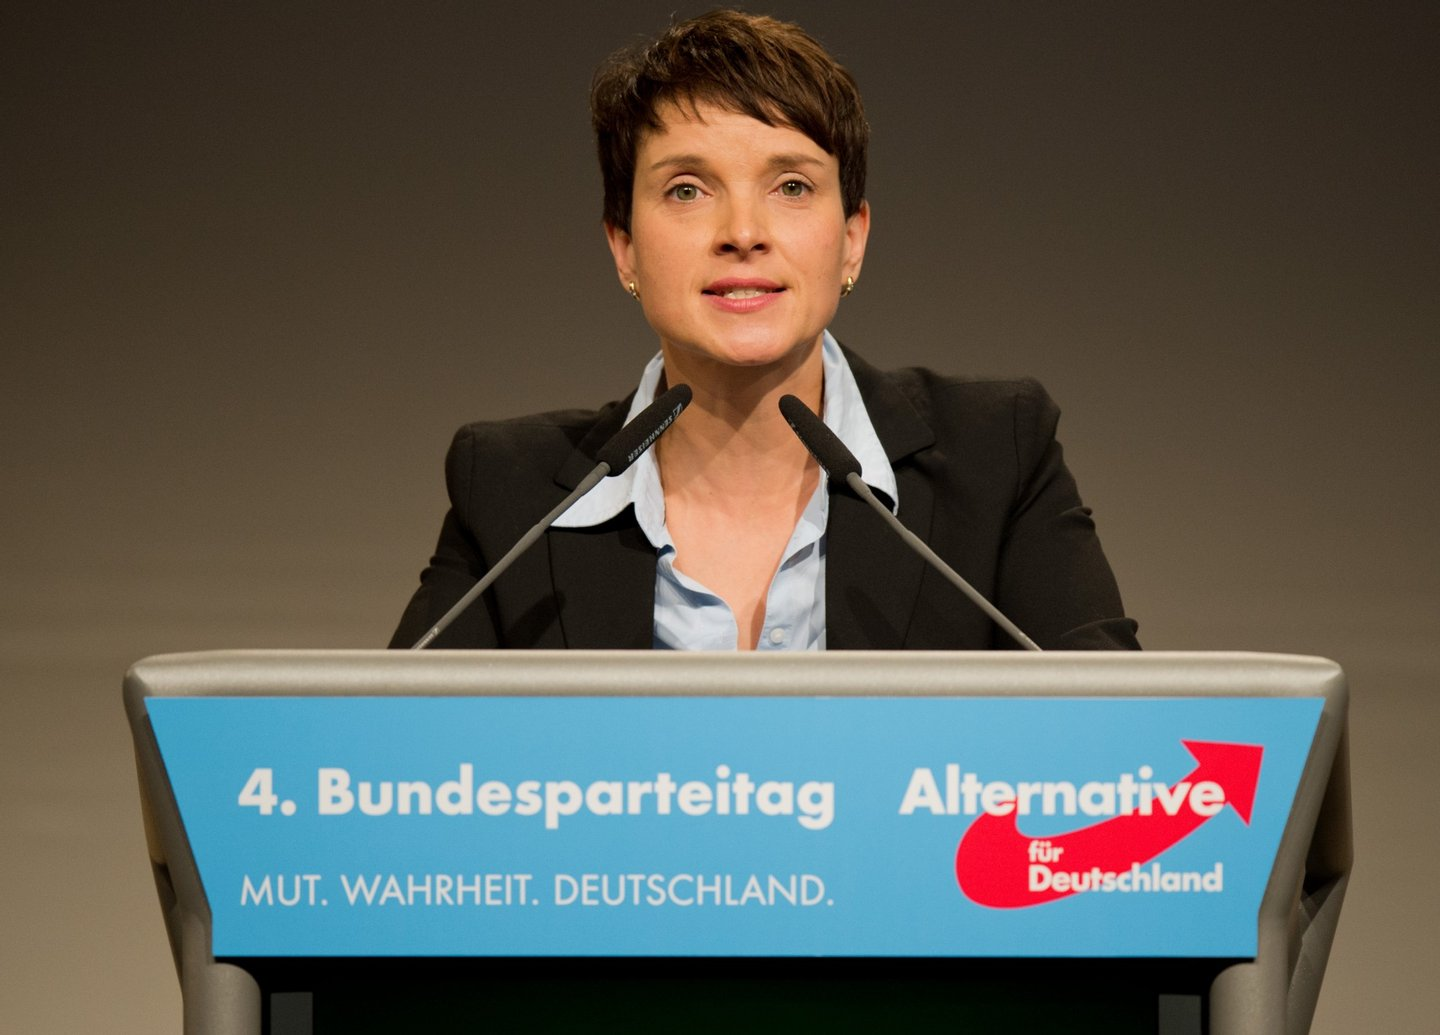 Leader of populist-nationalist Alternative for Germany (AfD) party, Frauke Petry delivers a speech at the party's congress in Hannover, central Germany, on November 28, 2015. AFP PHOTO / DPA / JULIAN STRATENSCHULTE GERMANY OUT / AFP / DPA / JULIAN STRATENSCHULTE (Photo credit should read JULIAN STRATENSCHULTE/AFP/Getty Images)